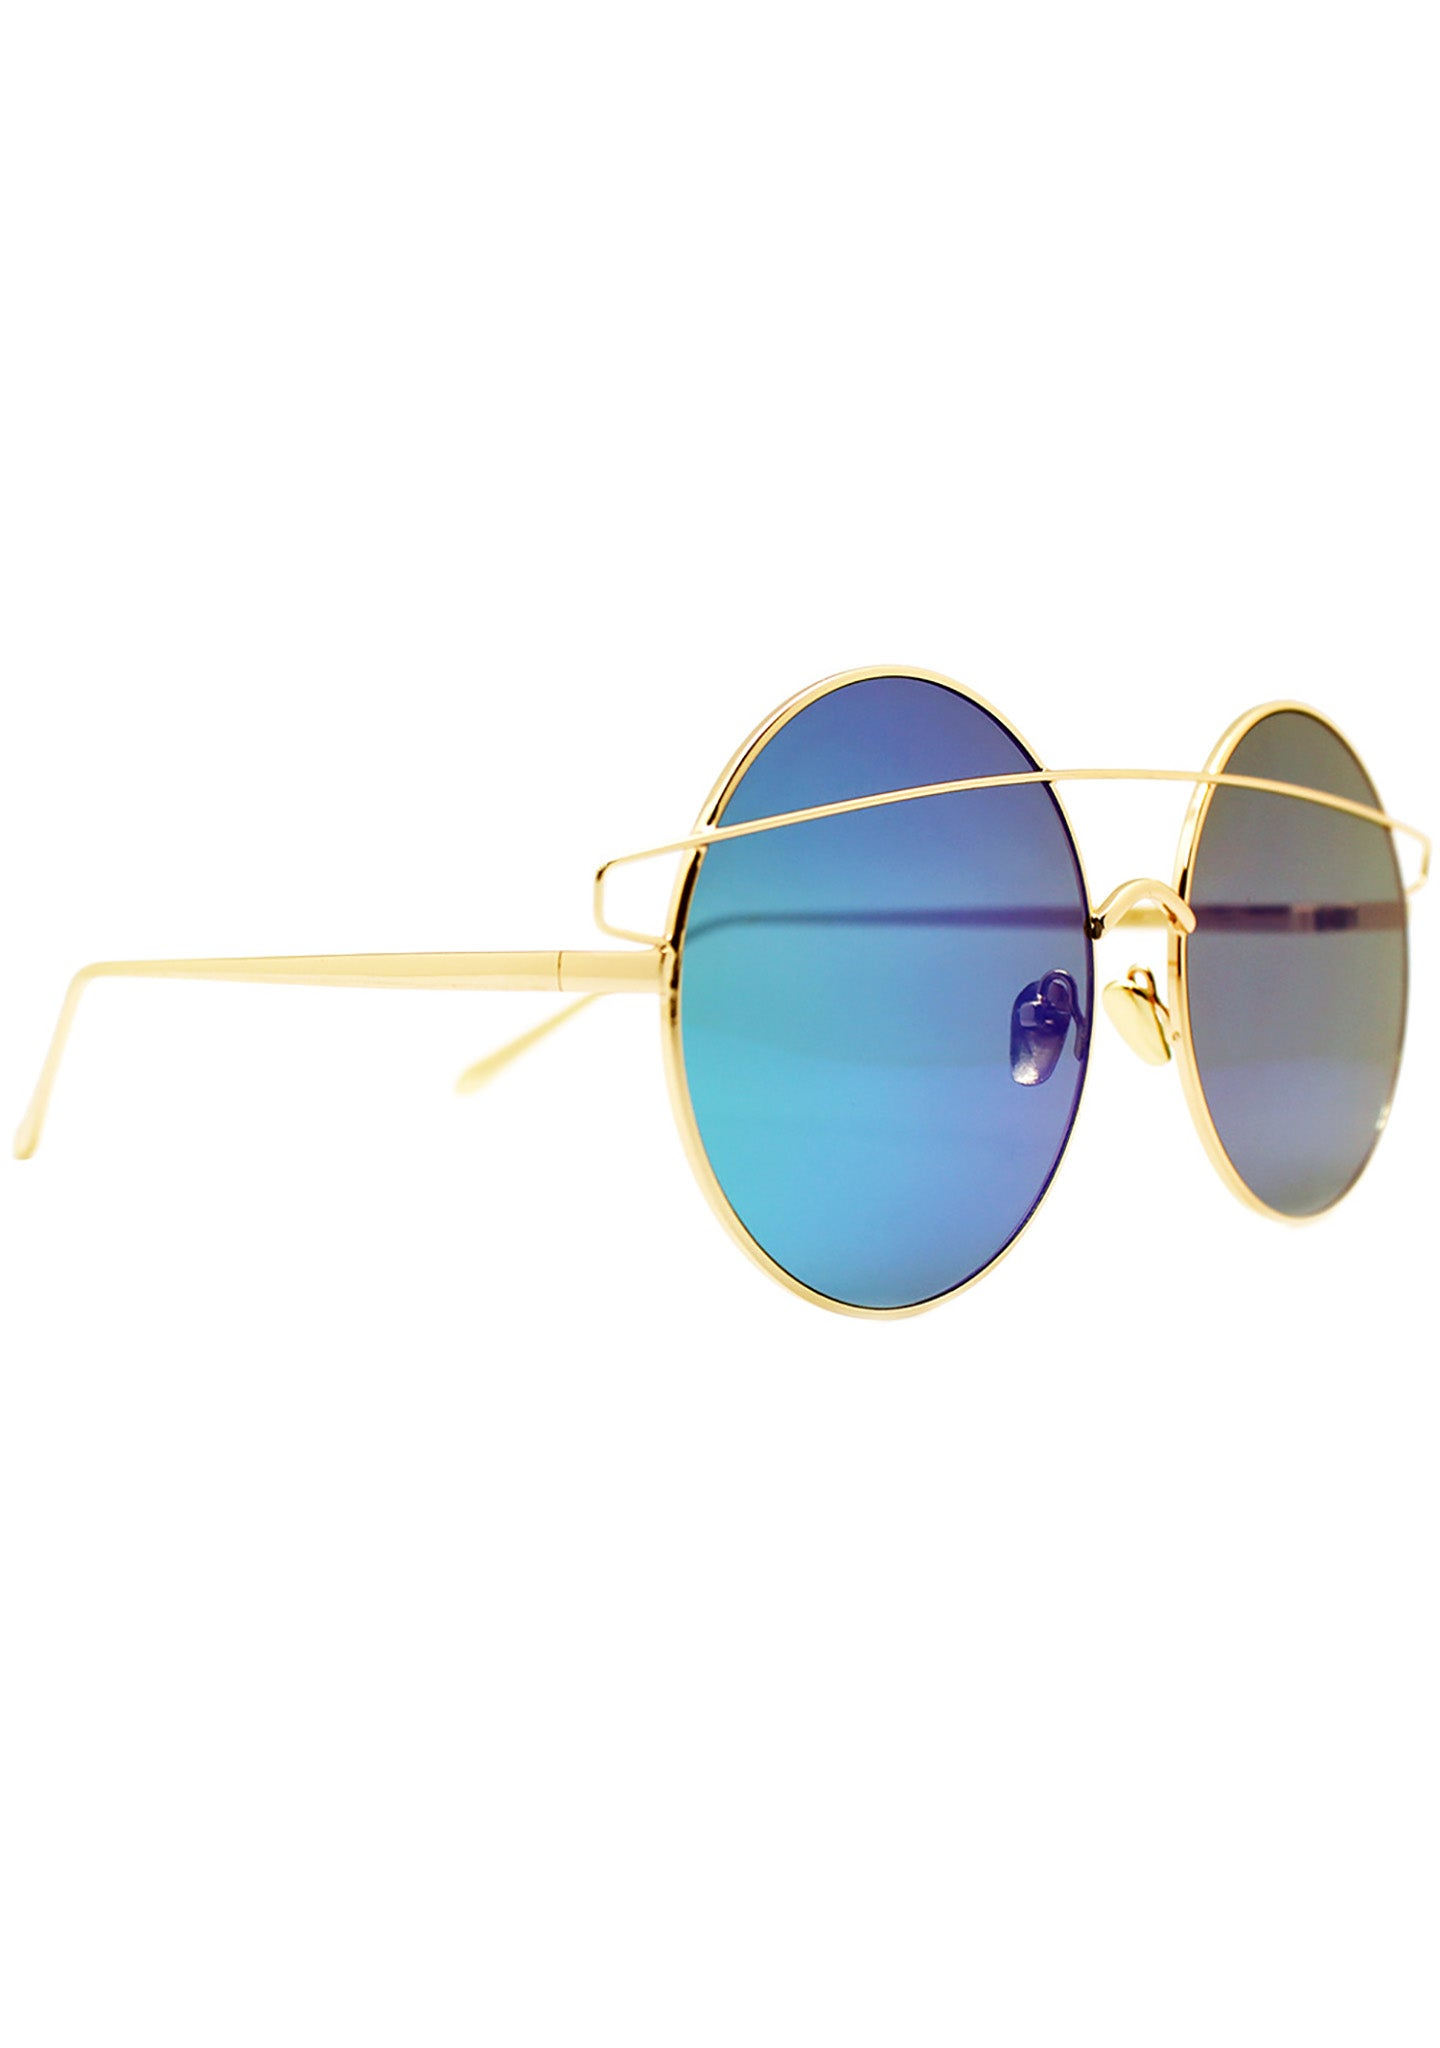 7 LUXE Galaxy Reflective Sunglasses